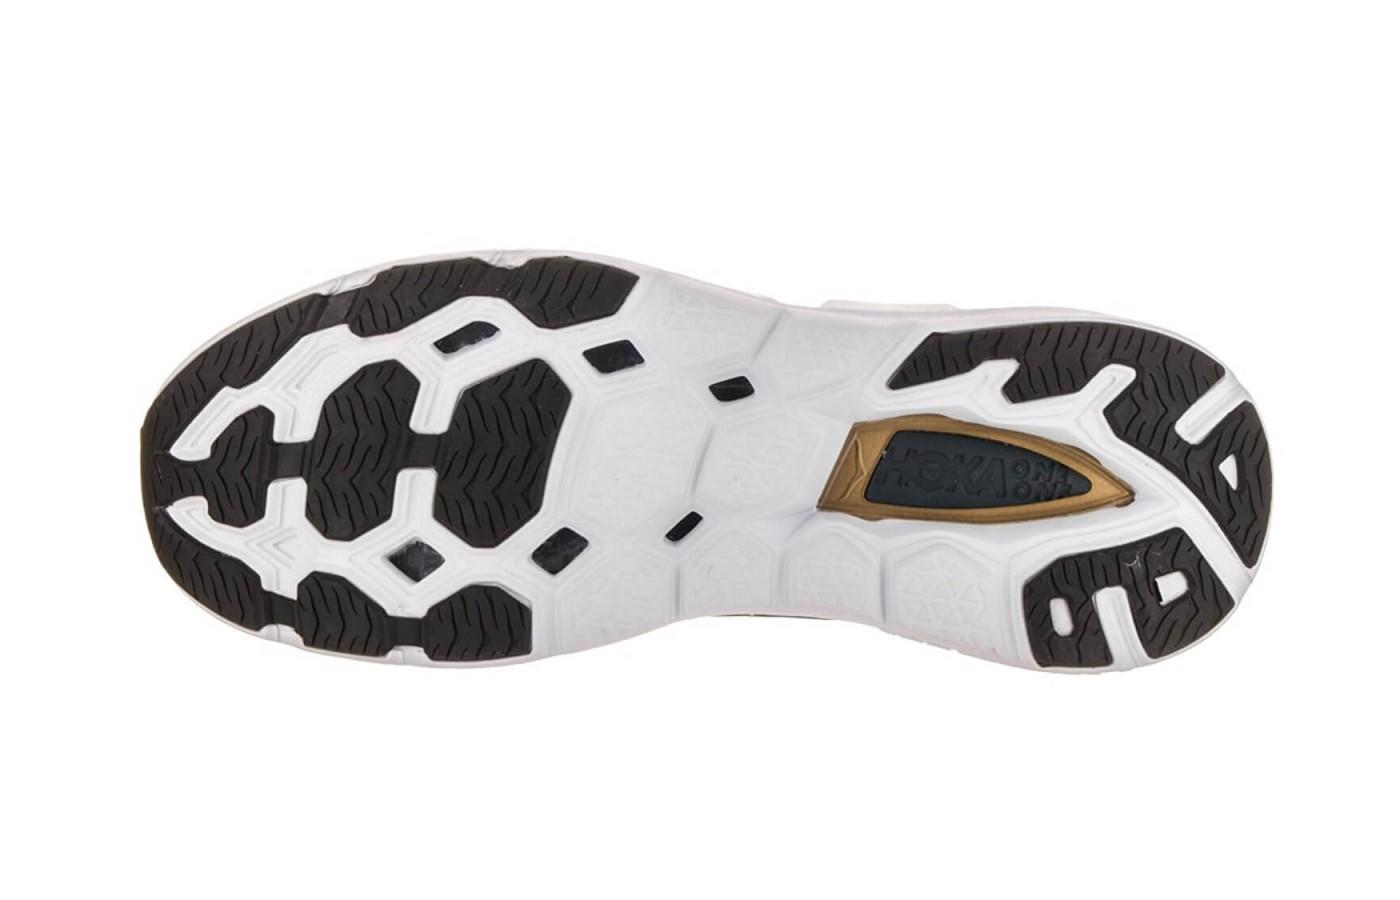 here's a look at the outsole of the vanquish 3